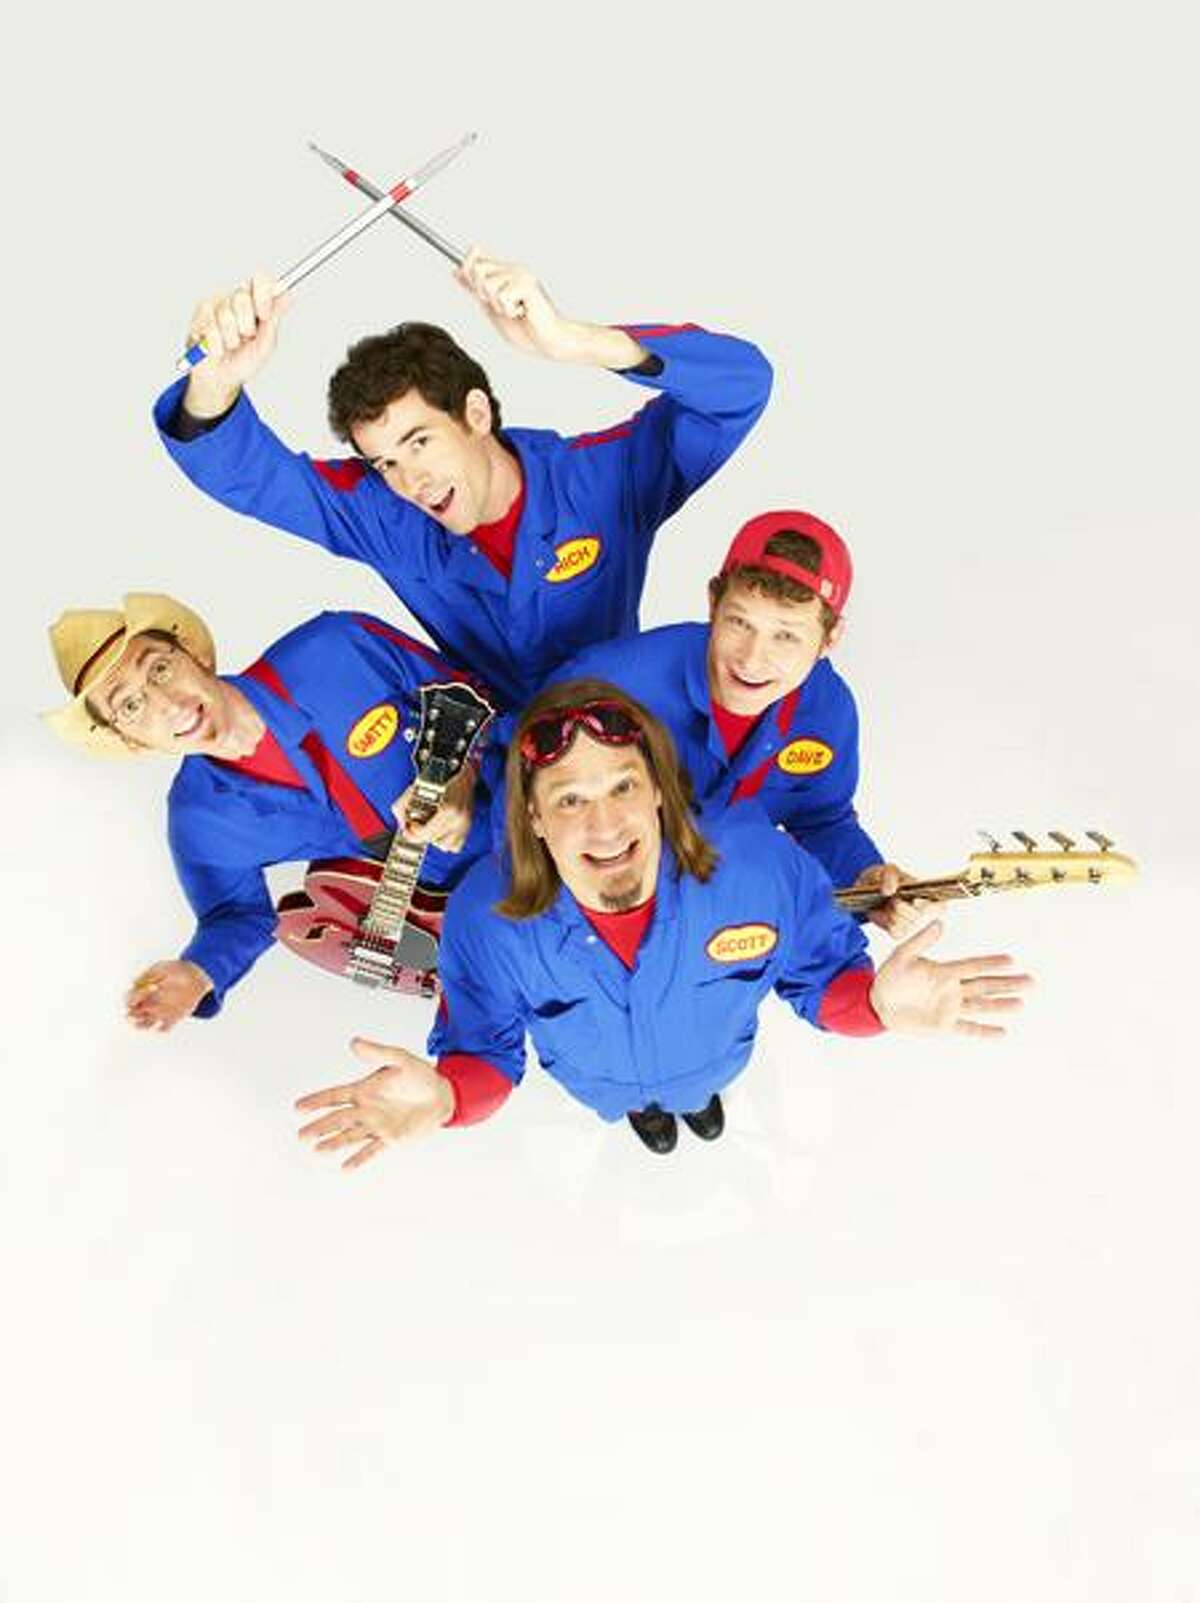 """IMAGINATION MOVERS - Scott """"Smitty"""" Smith as """"Mover Smitty,"""" Rich Collins as """"Mover Rich,"""" Dave Poche as """"Mover Dave"""" and Scott Durbin as """"Mover Scott"""" star in """"Imagination Movers"""" airing on Disney Channel. (DISNEY CHANNEL/BOB D'AMICO)"""